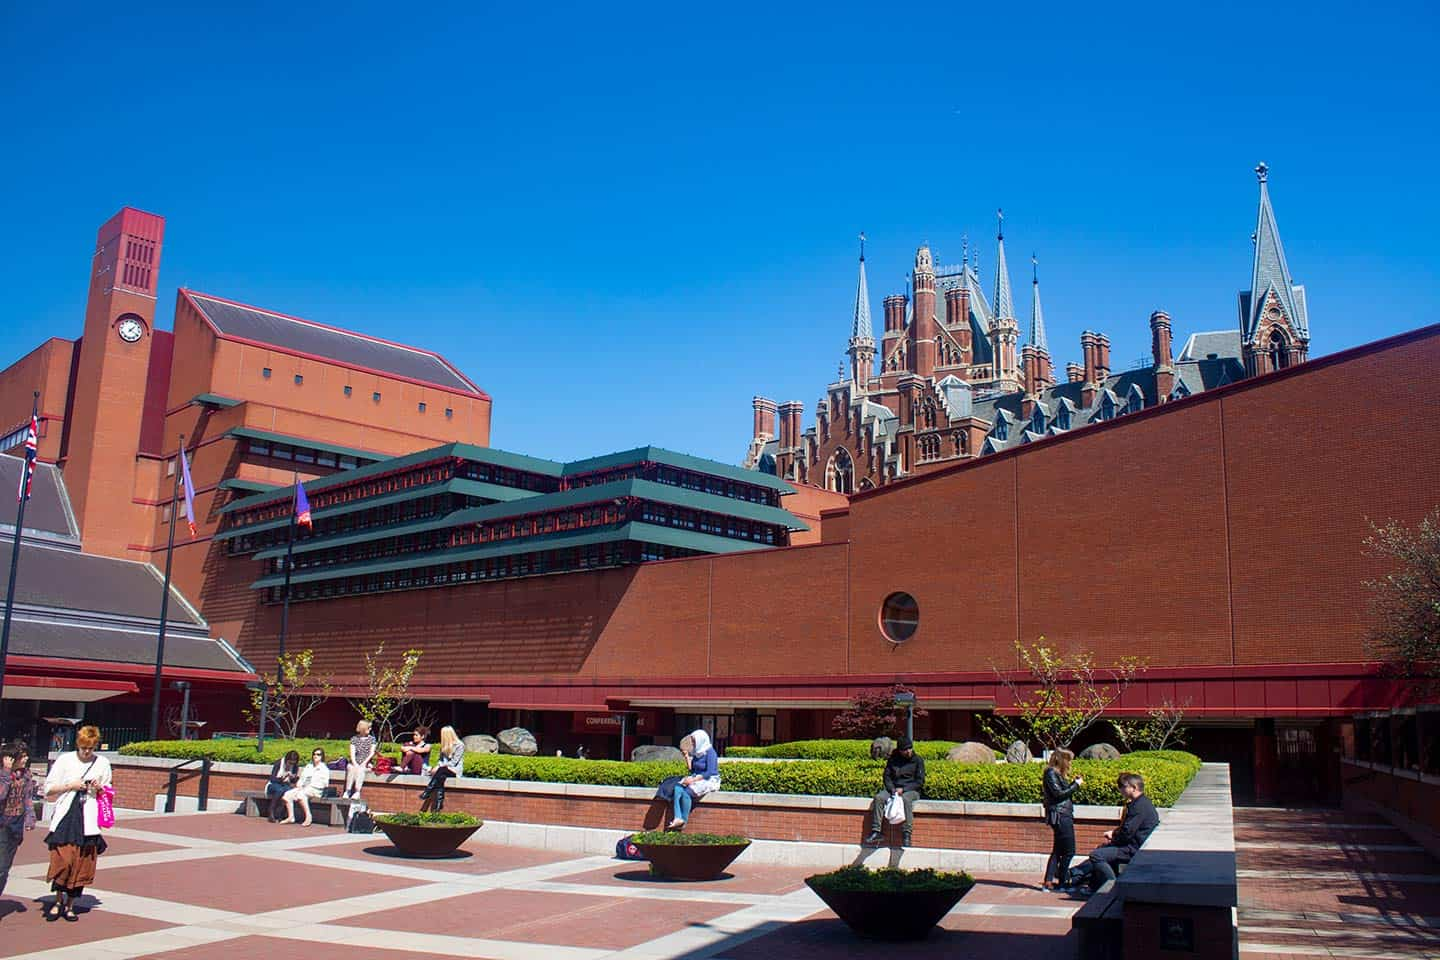 Image of the British Library building in London